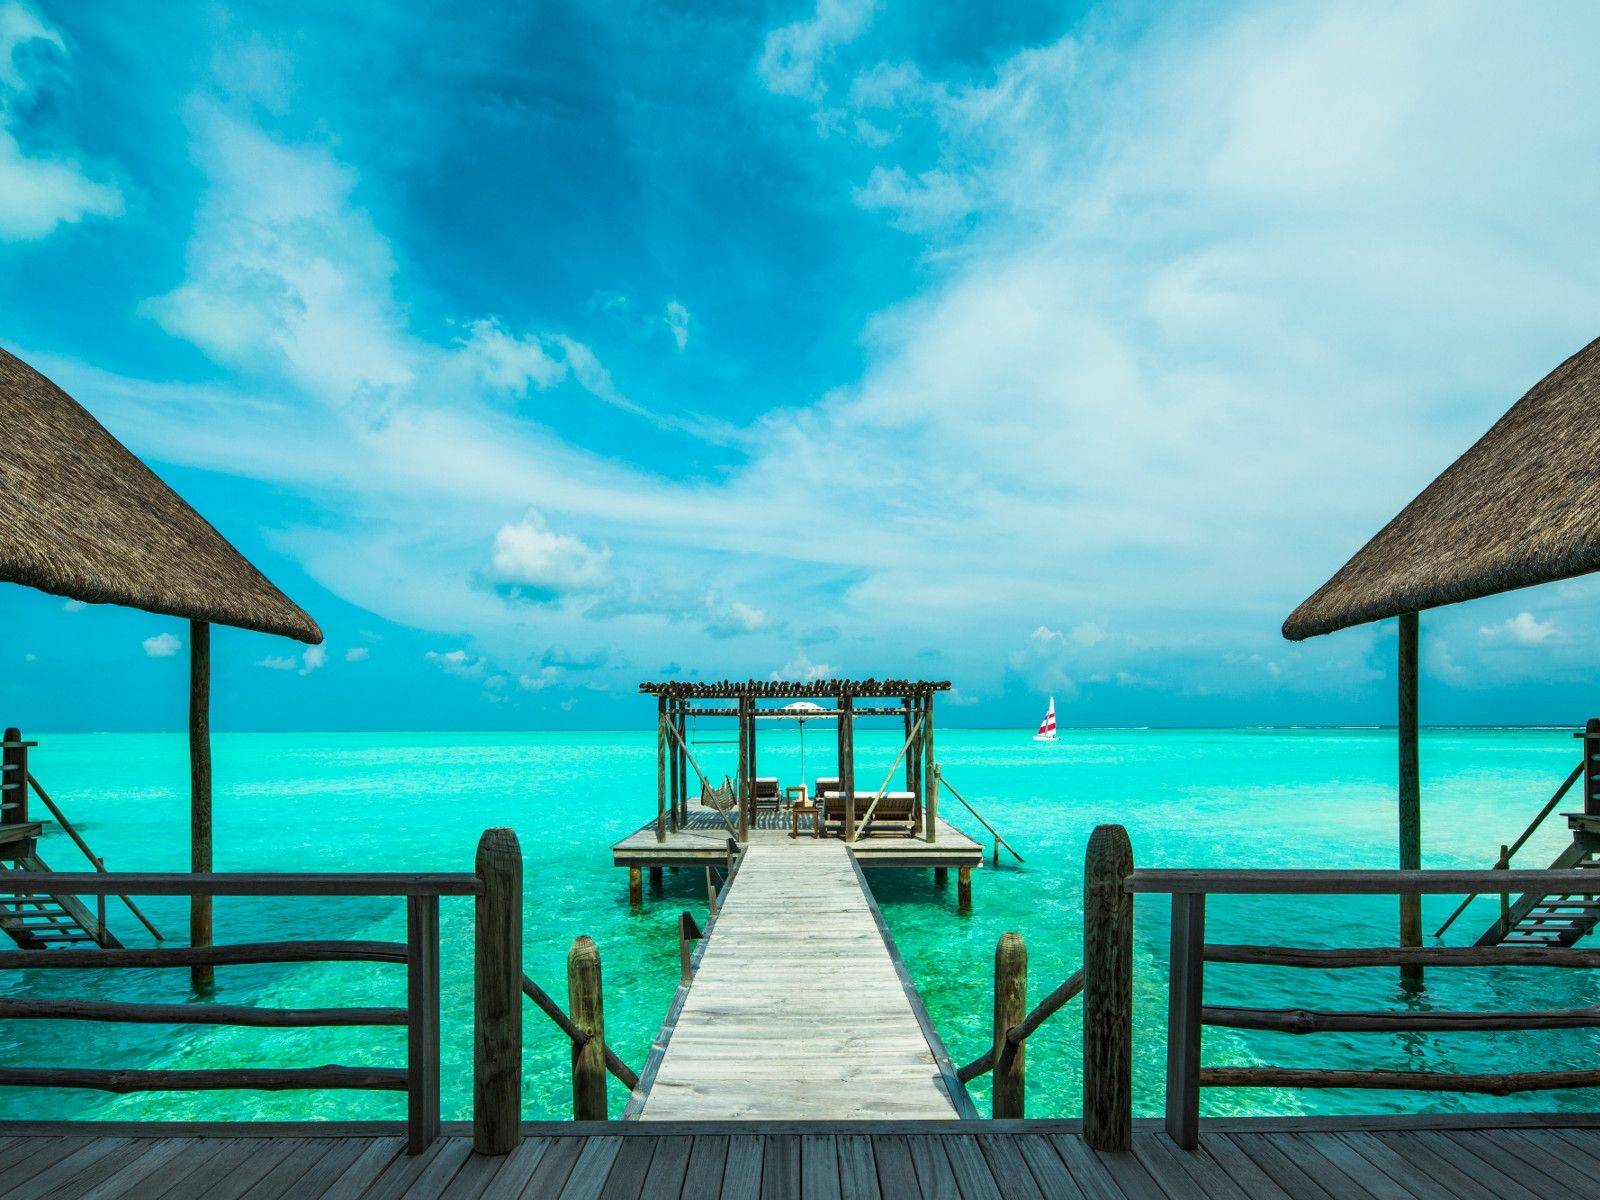 Maldives resort official site cocoa island by como maldives maldives resort official site cocoa island by como maldives island resort sciox Gallery